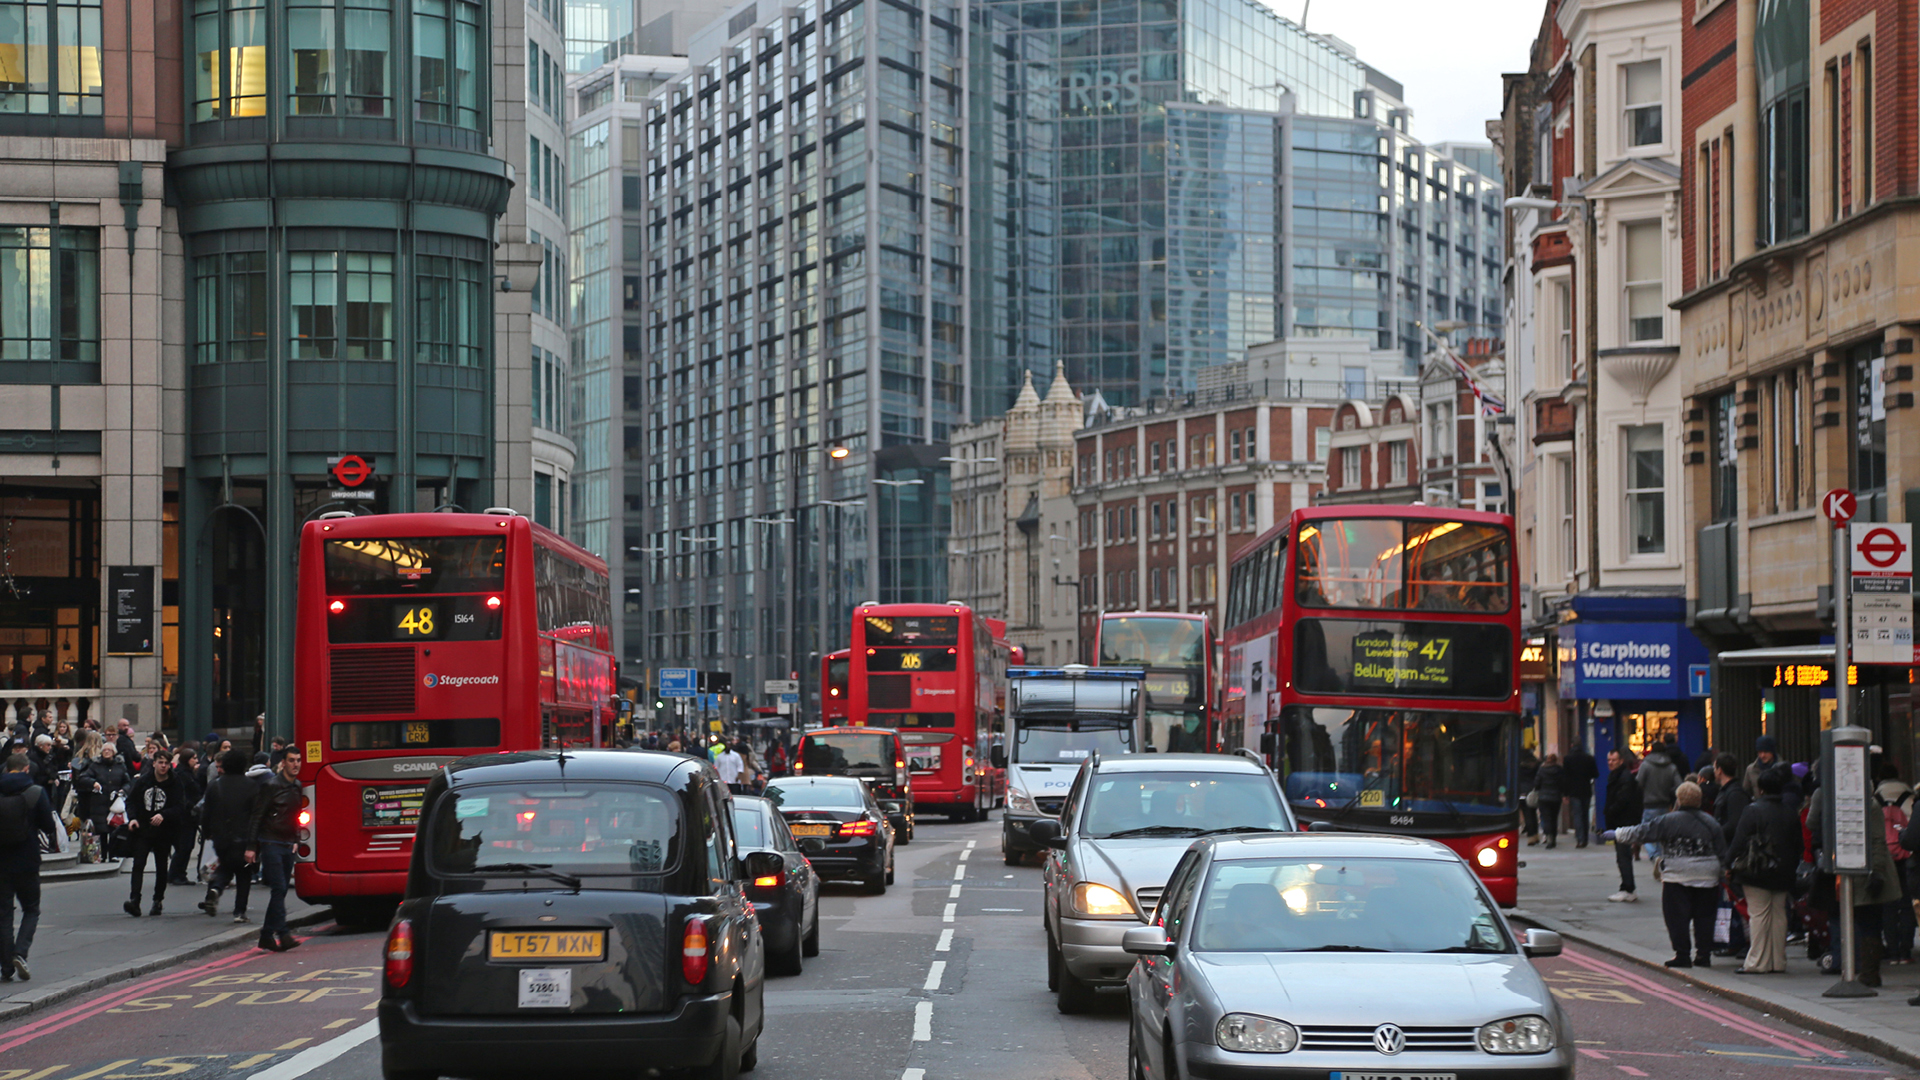 Buses and cars in London